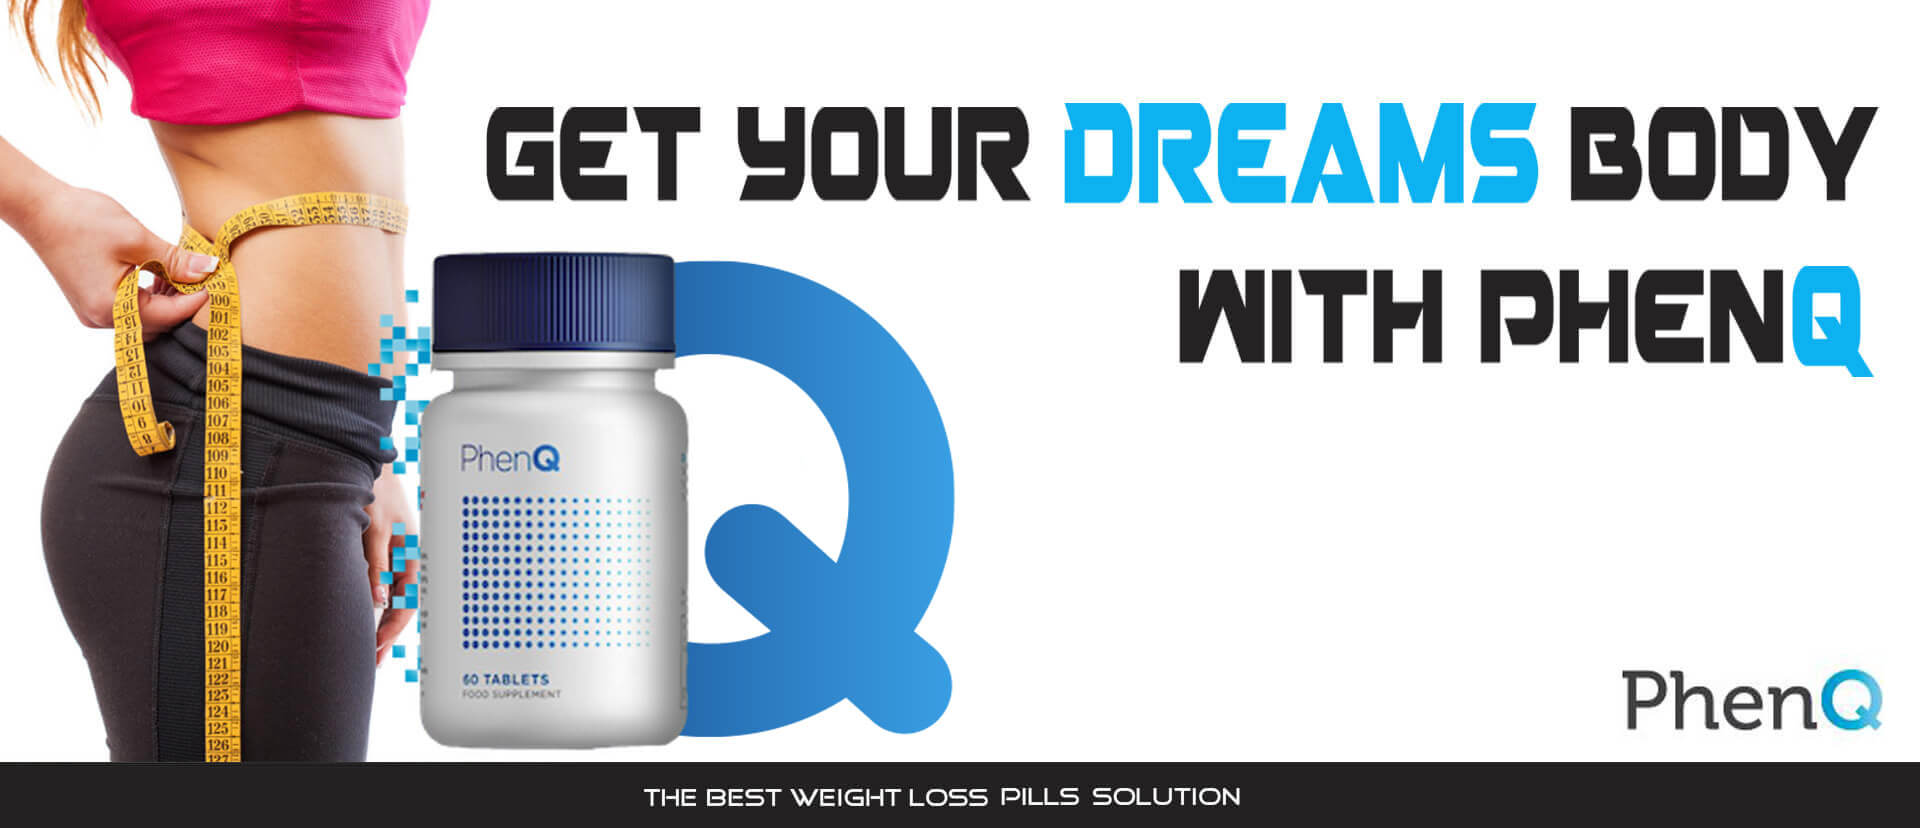 phenq review - the best weight loss pills | get your